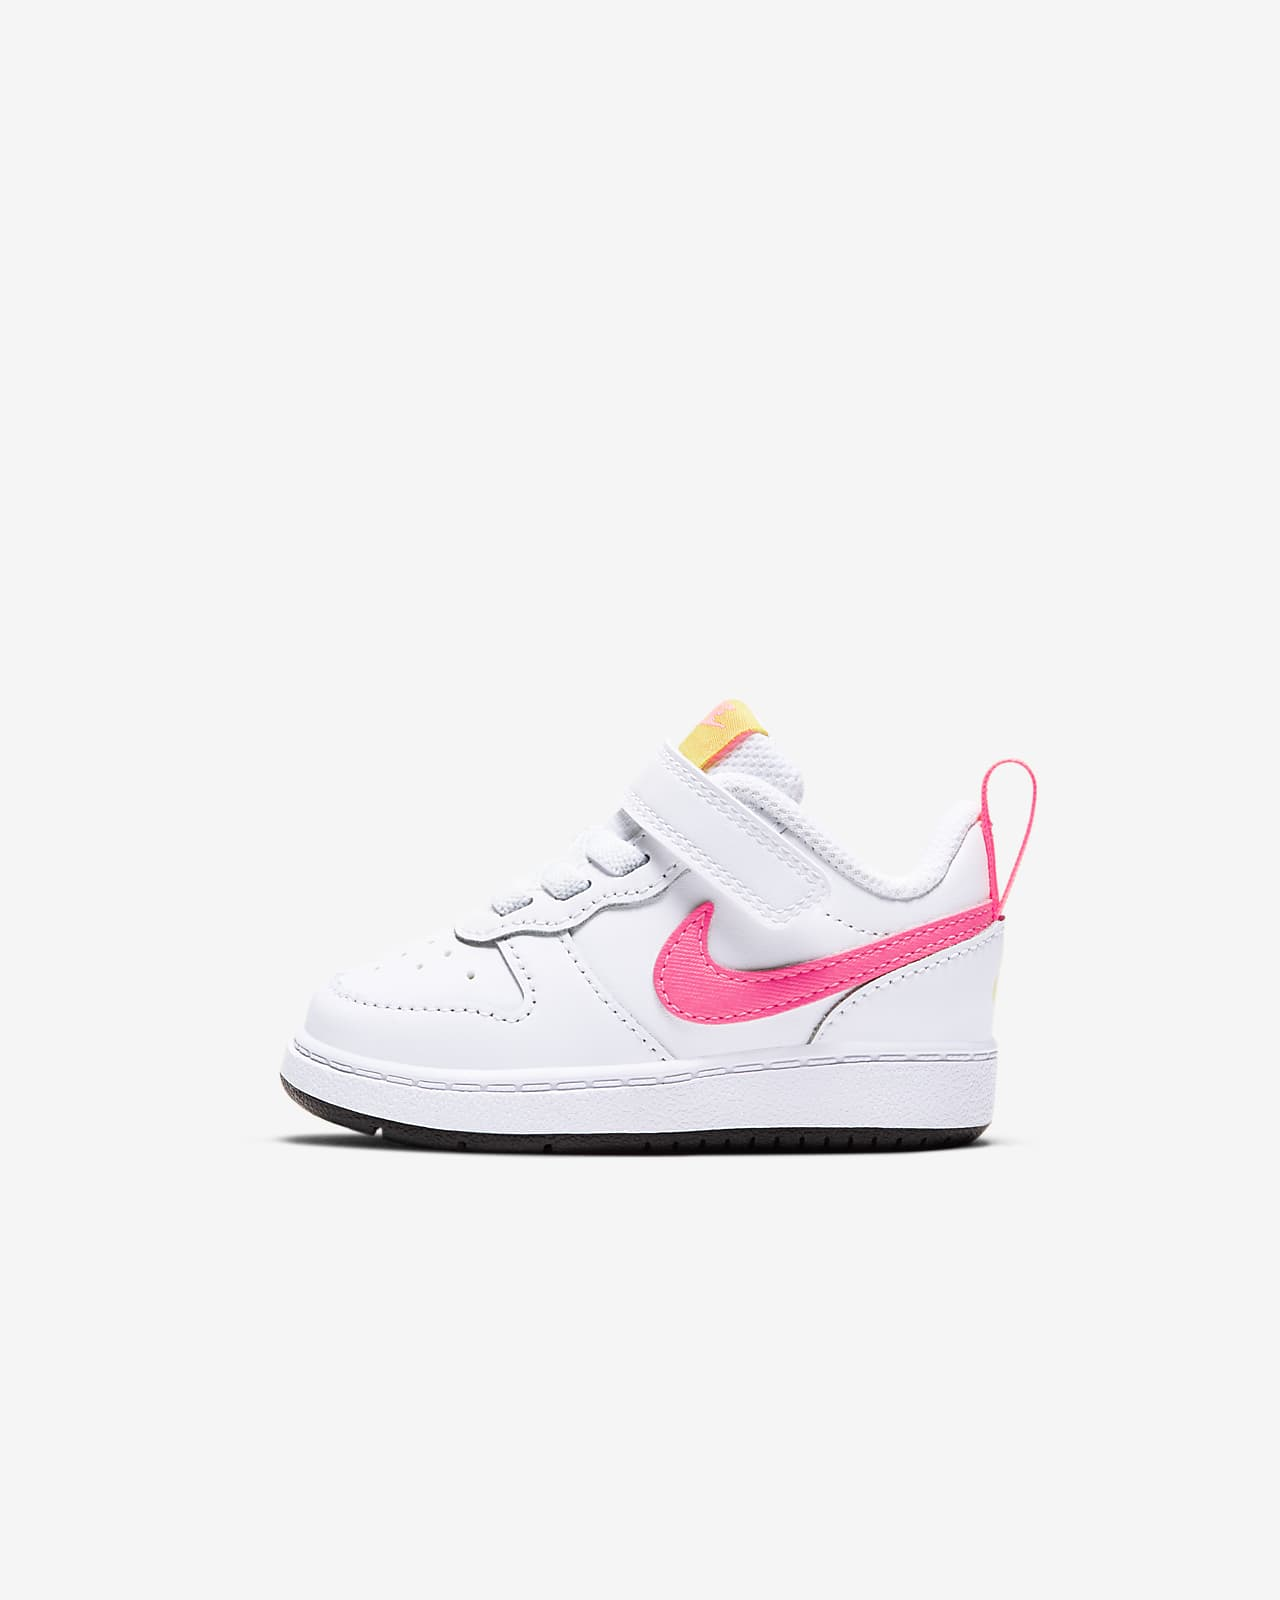 Nike Court Borough Low 2 Schoen voor baby's/peuters